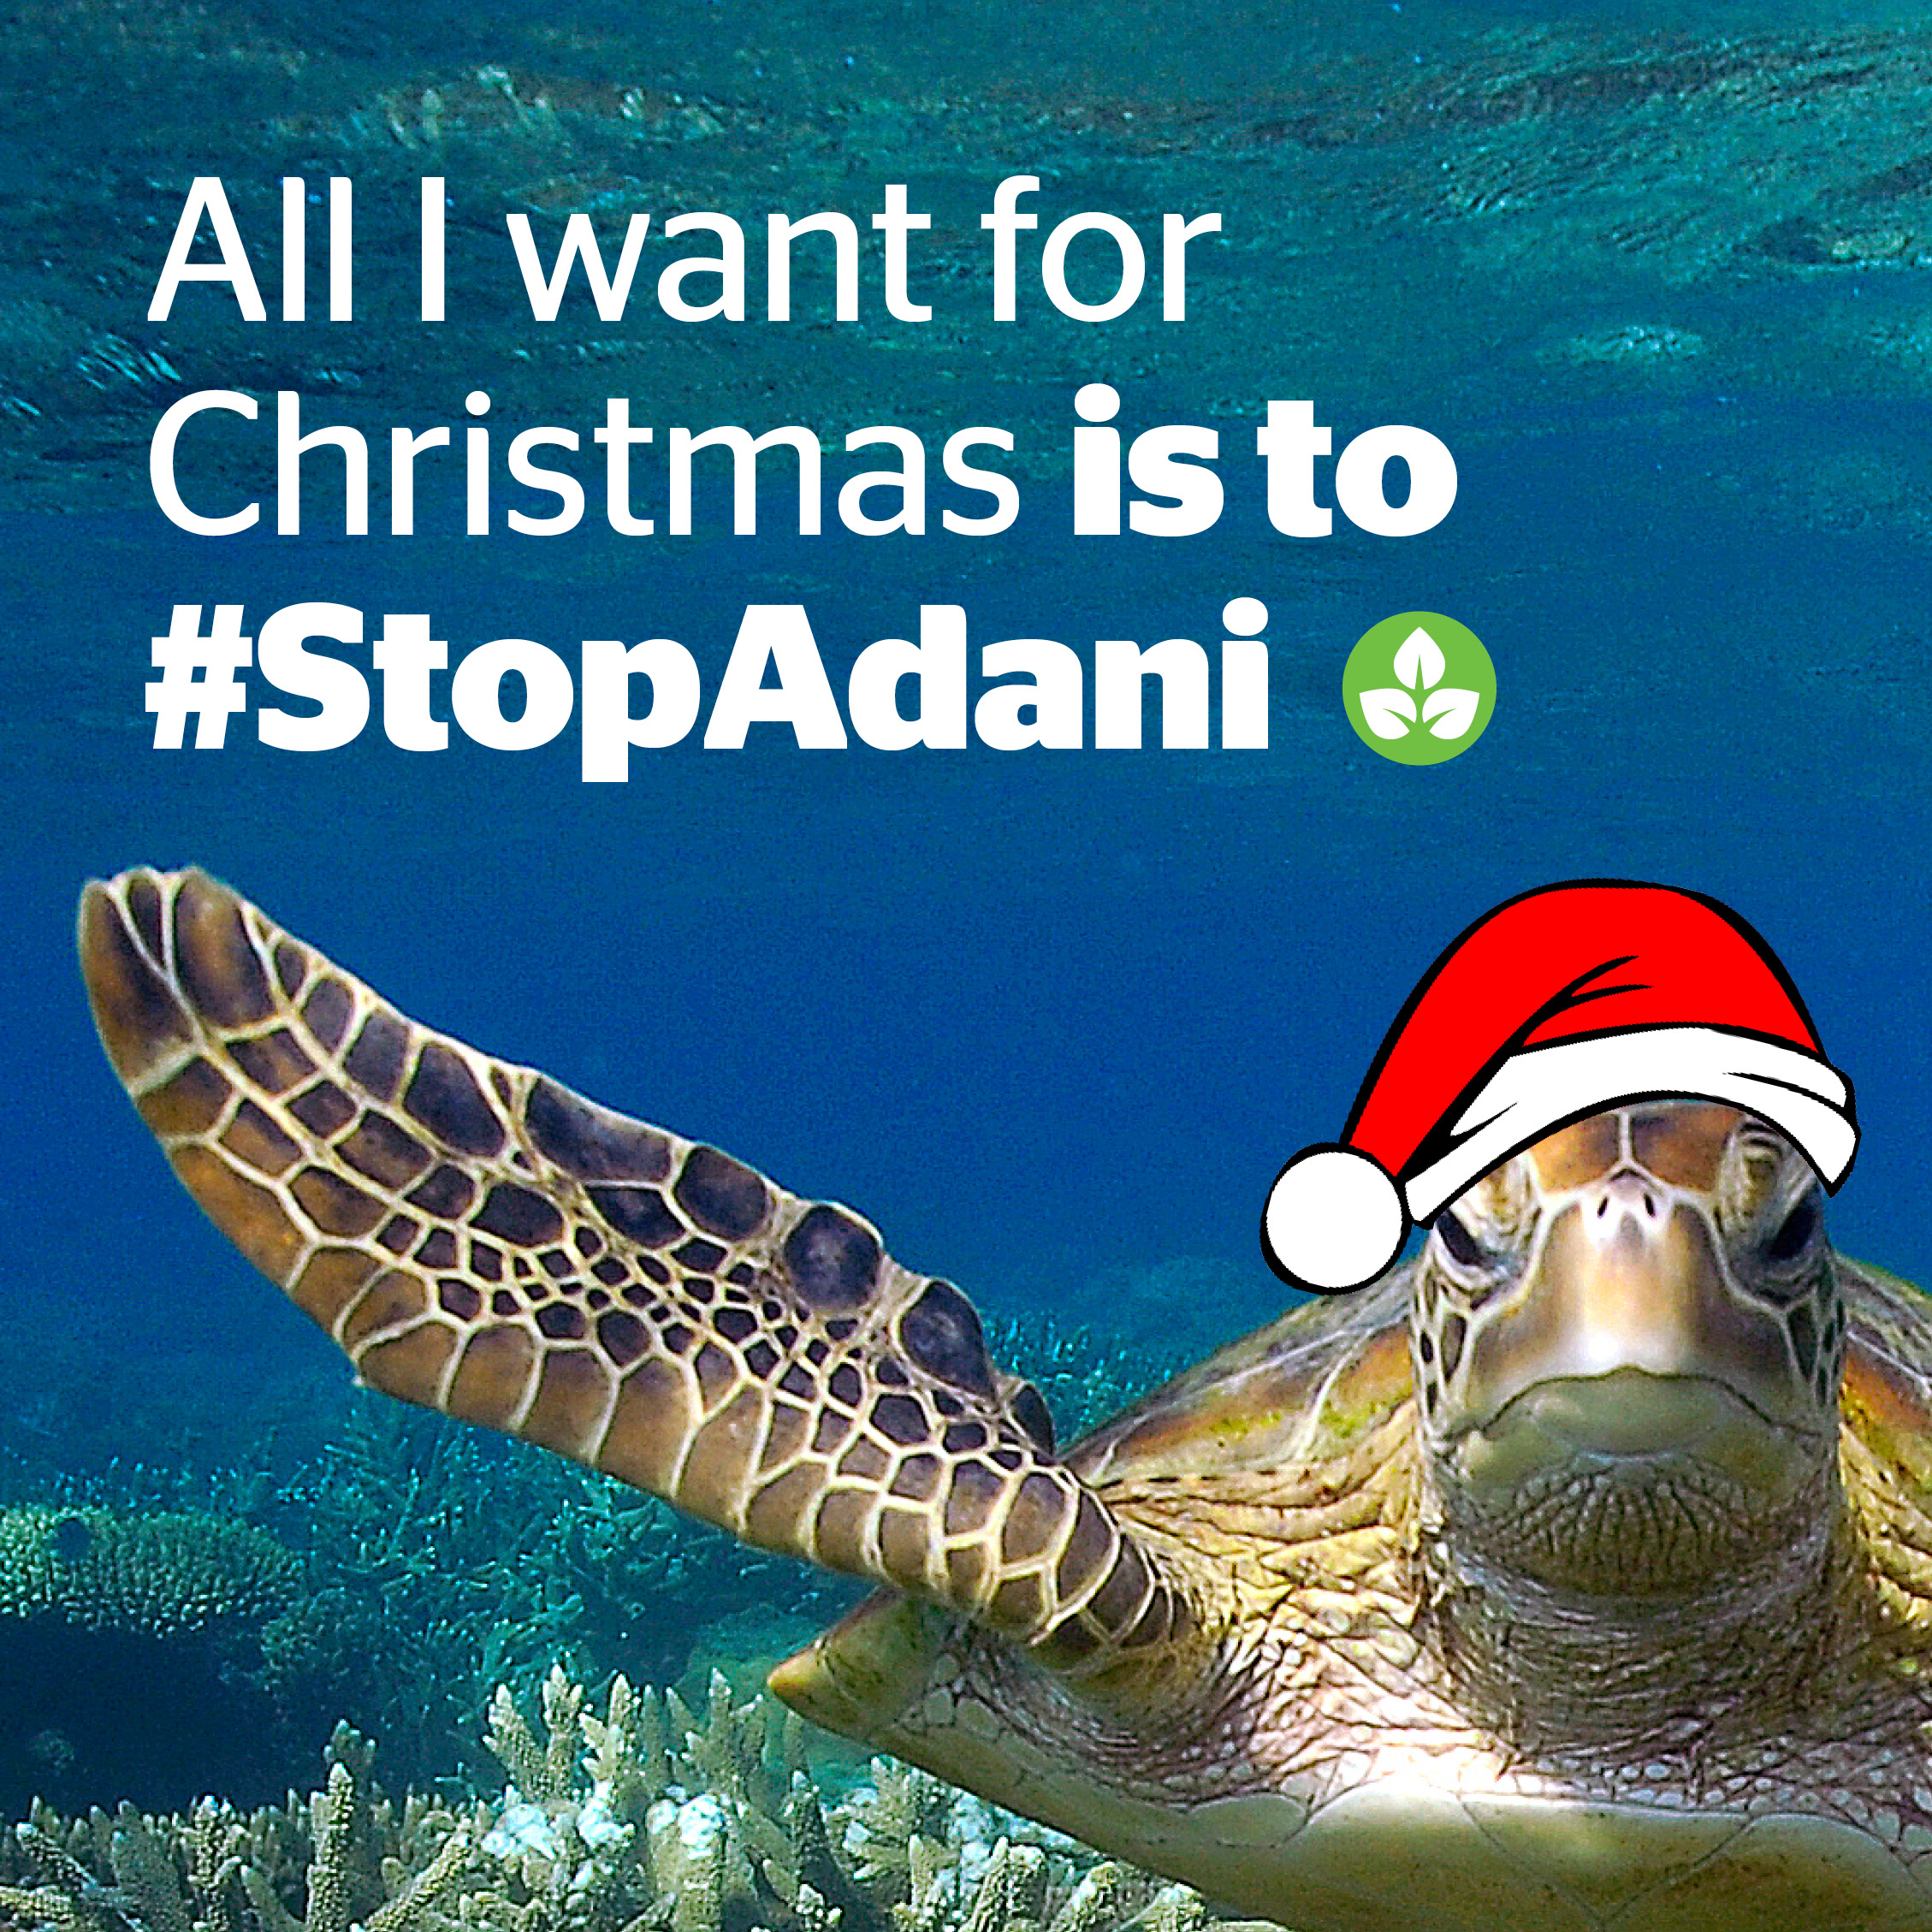 All I want for Christmas is to Stop Adani!